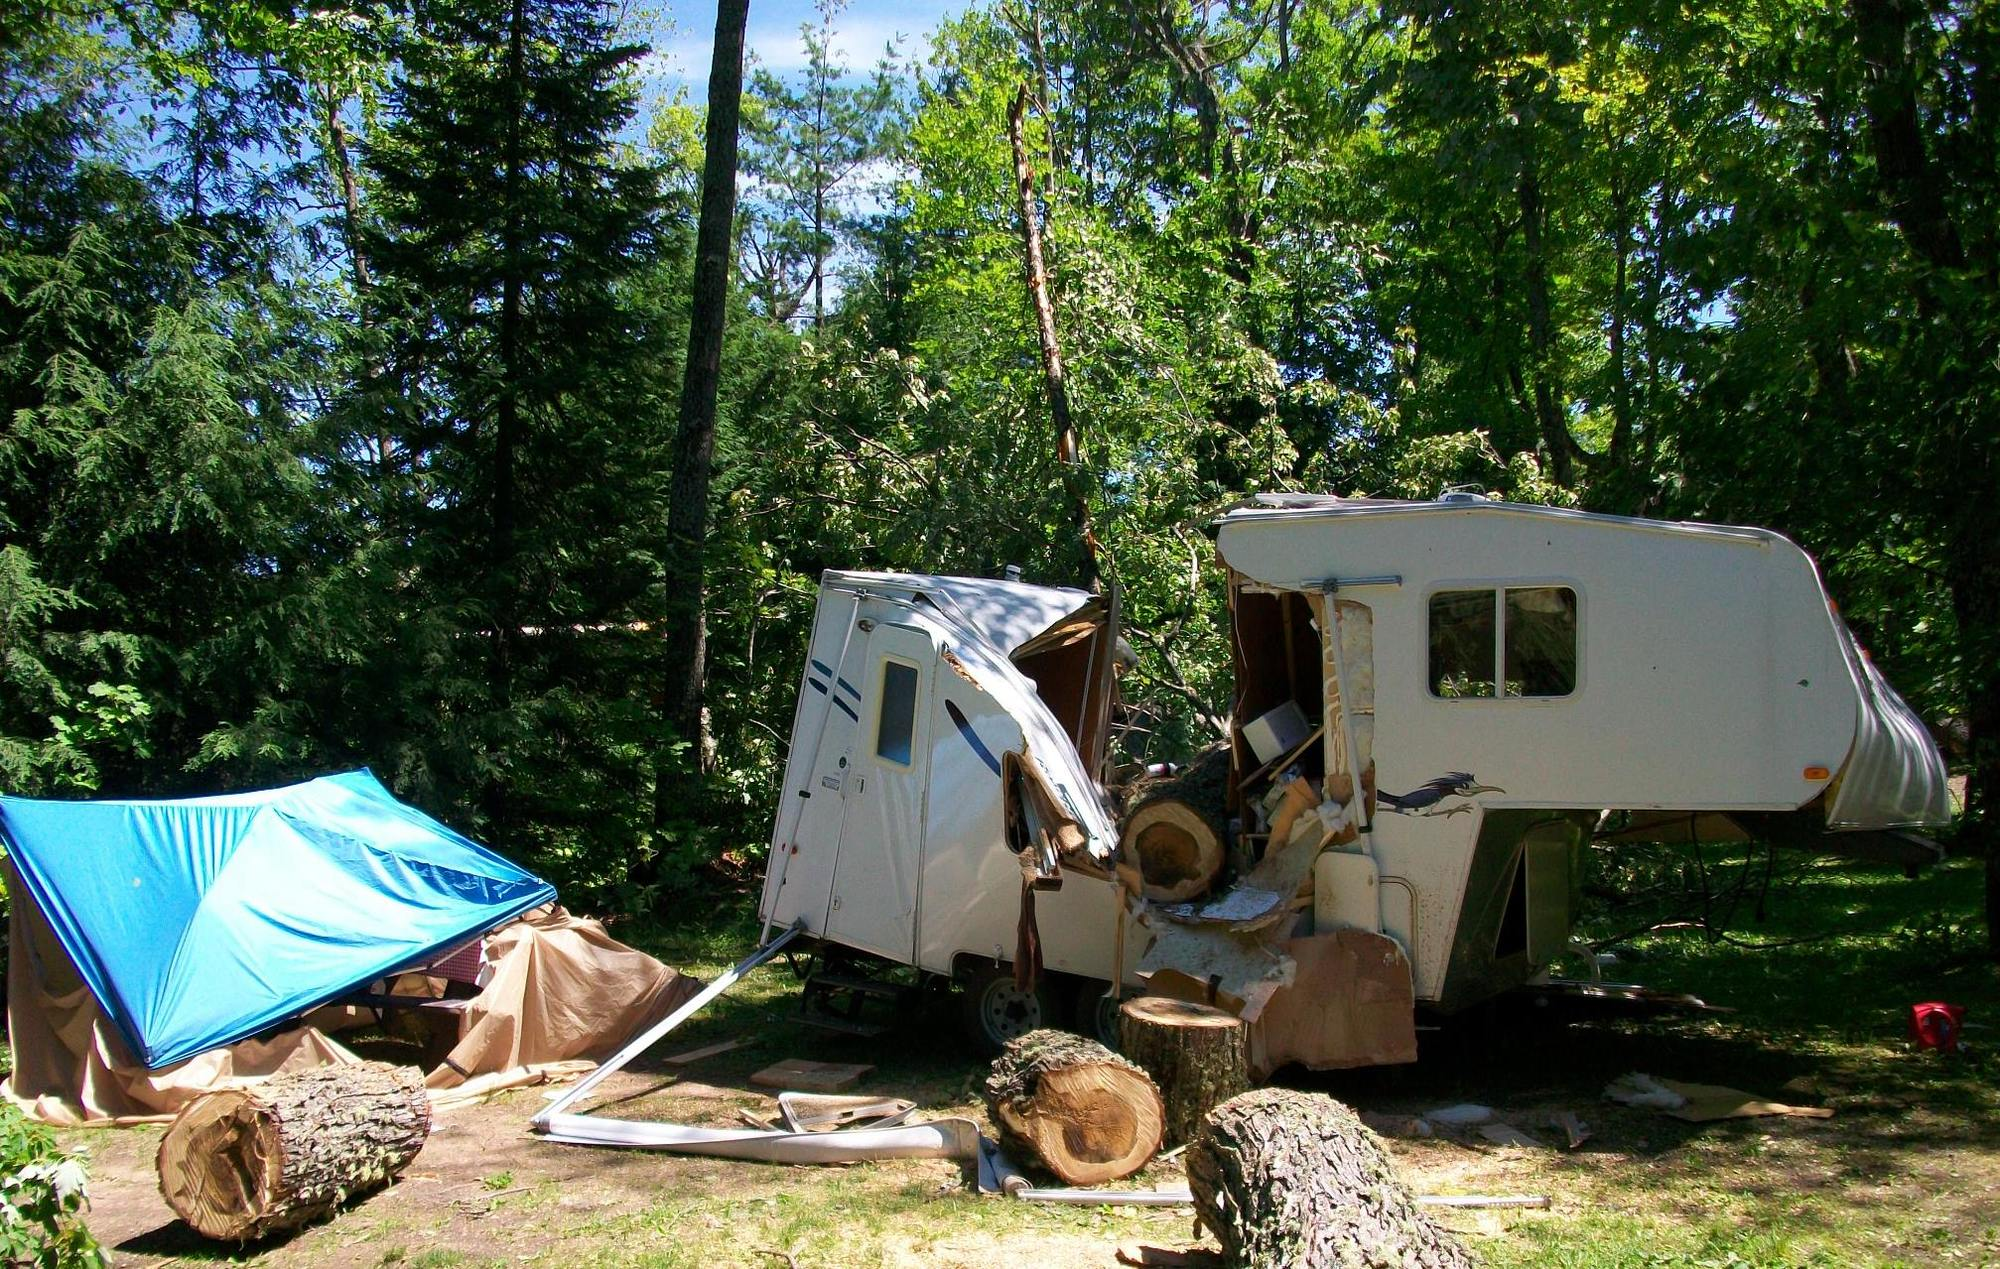 Tree fall storm damage to one of two travel campers at the Emily Lake State Forest Campground in Houghton County. No injuries were reported.